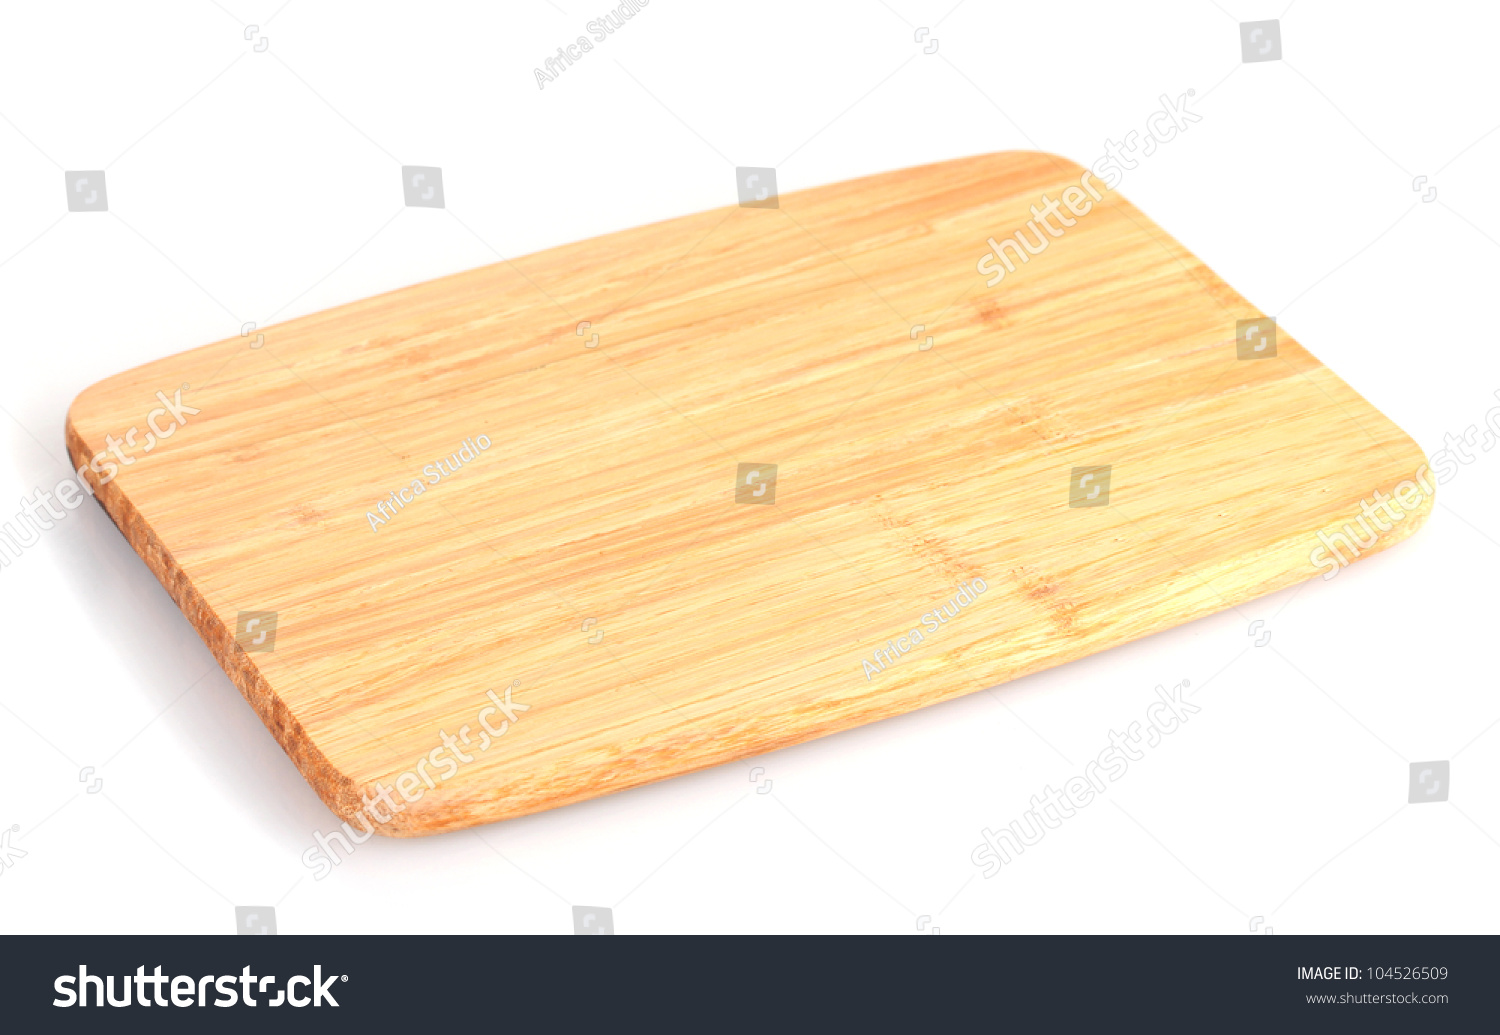 Cutting board isolated on white stock photo 104526509 for White cutting board used for